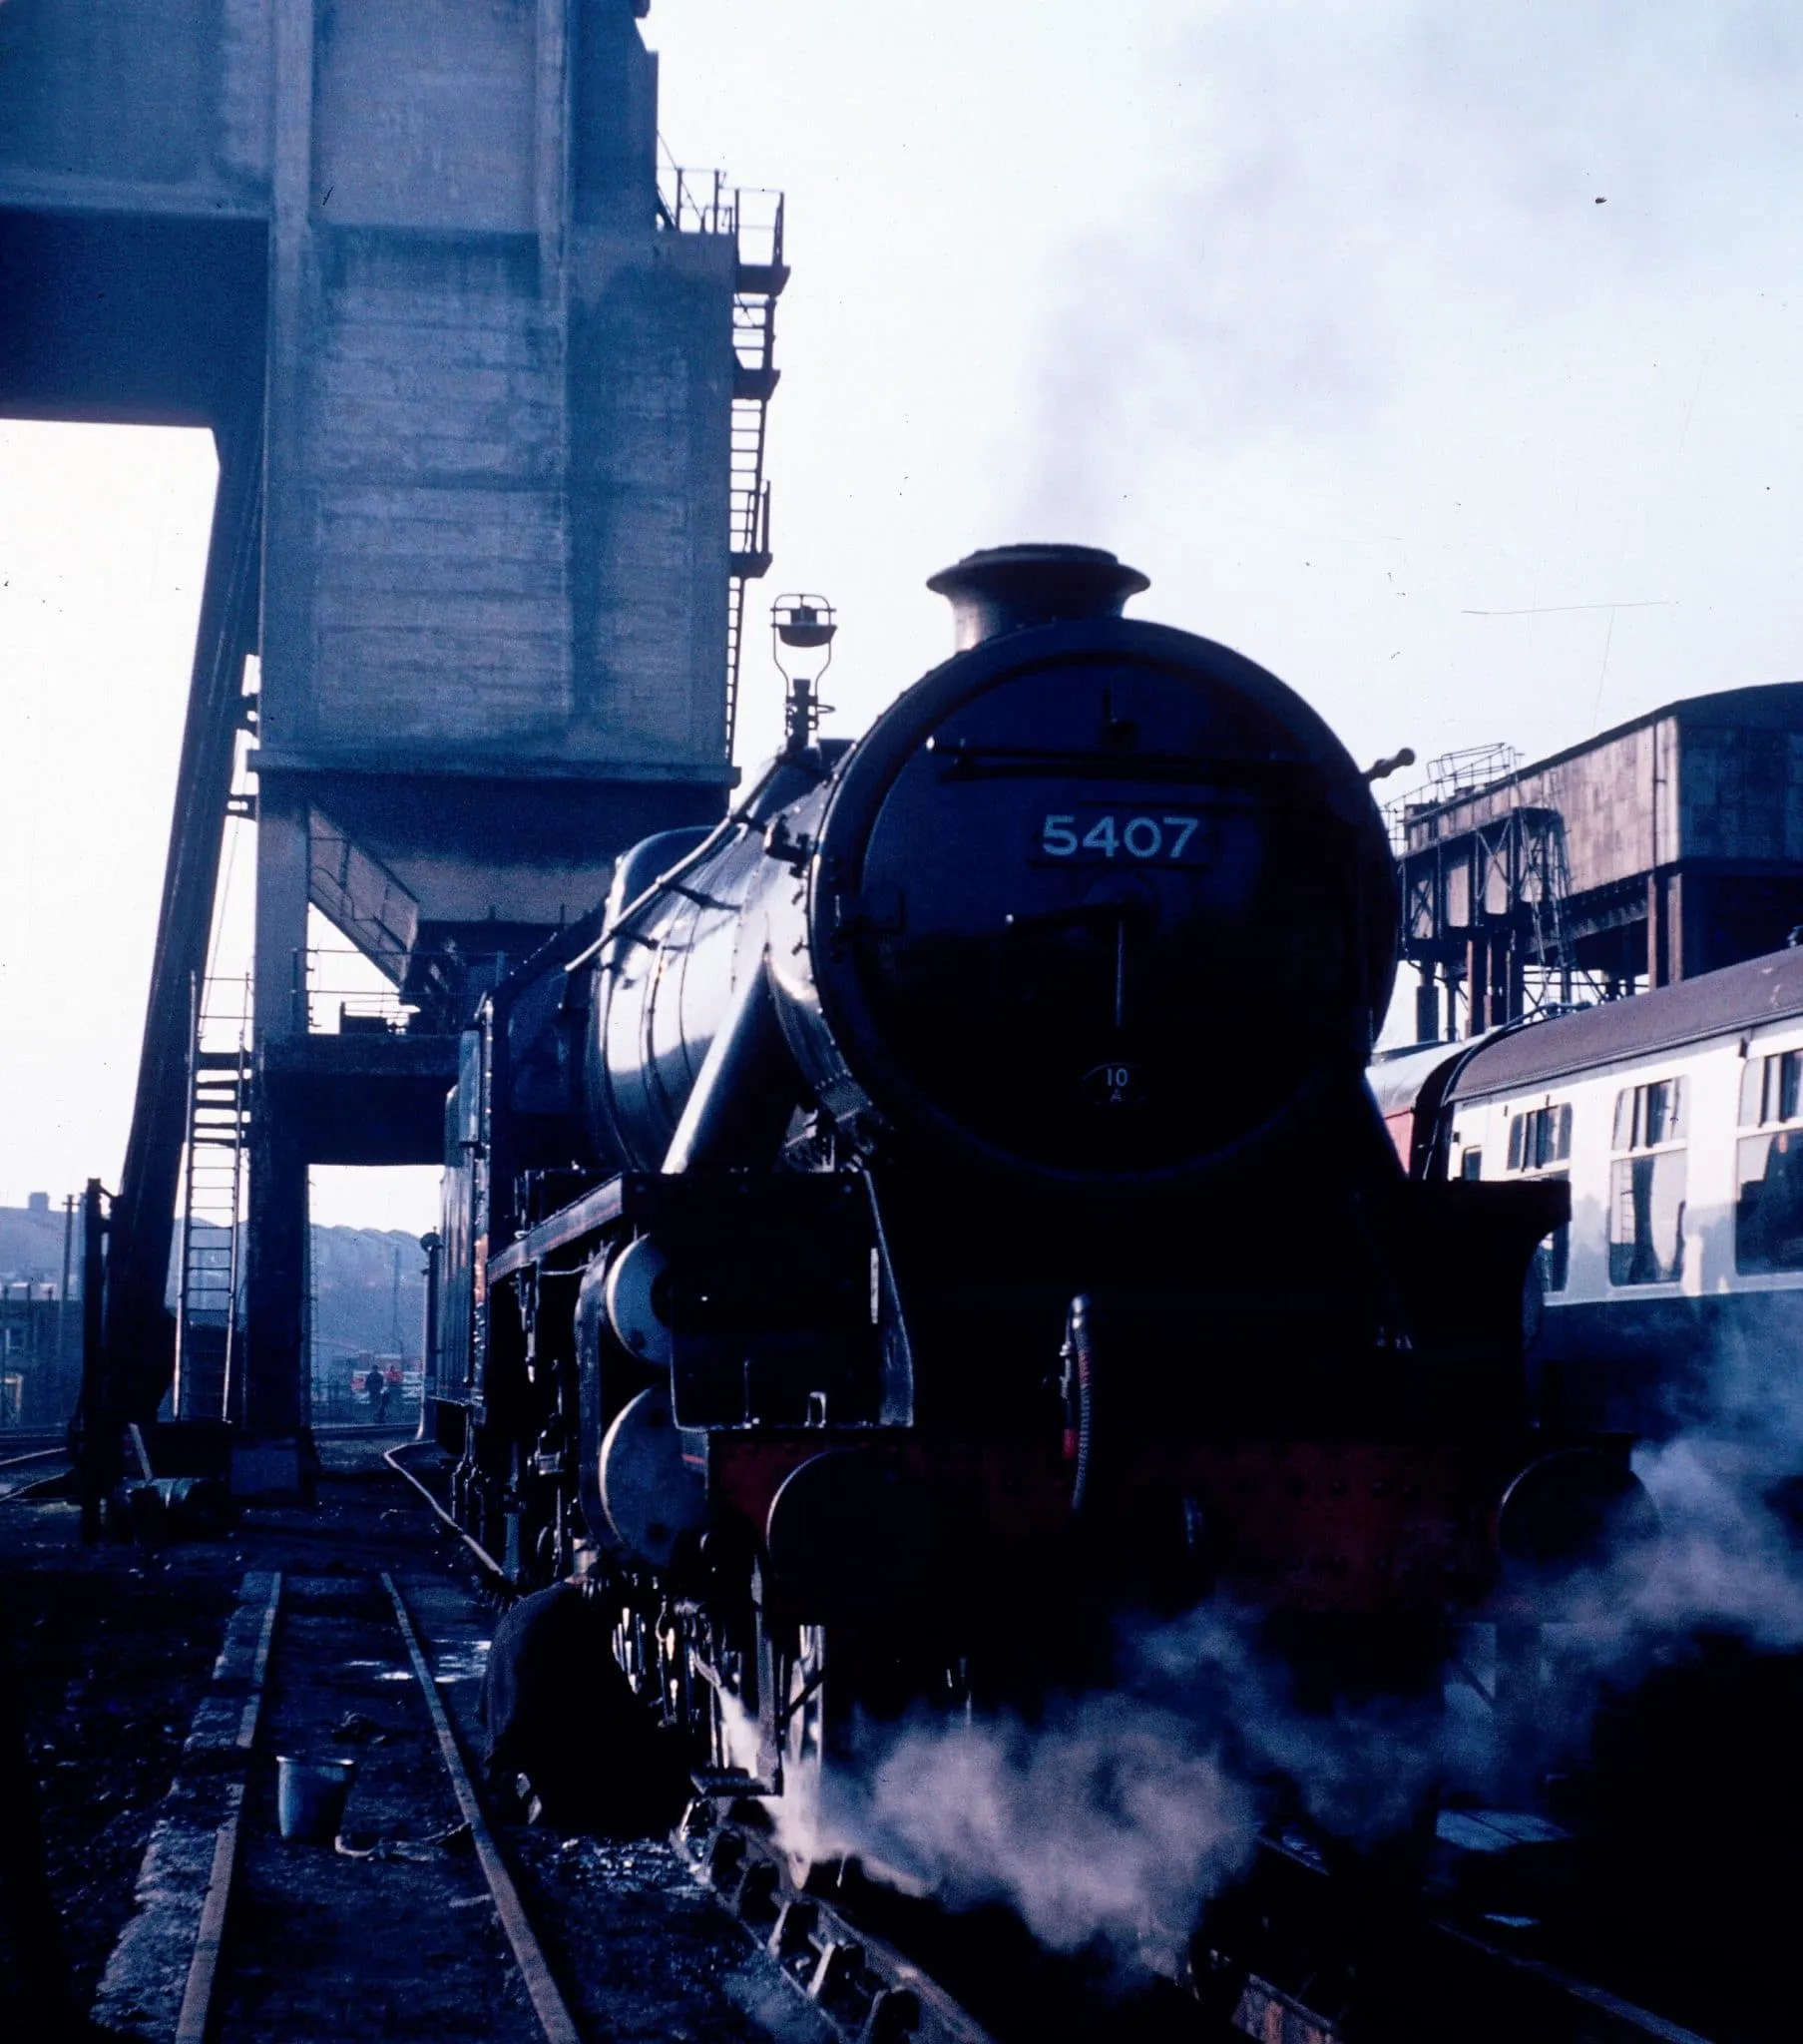 Steam locomotive Stanier Black Five 5407 Carnforth under coaling towers